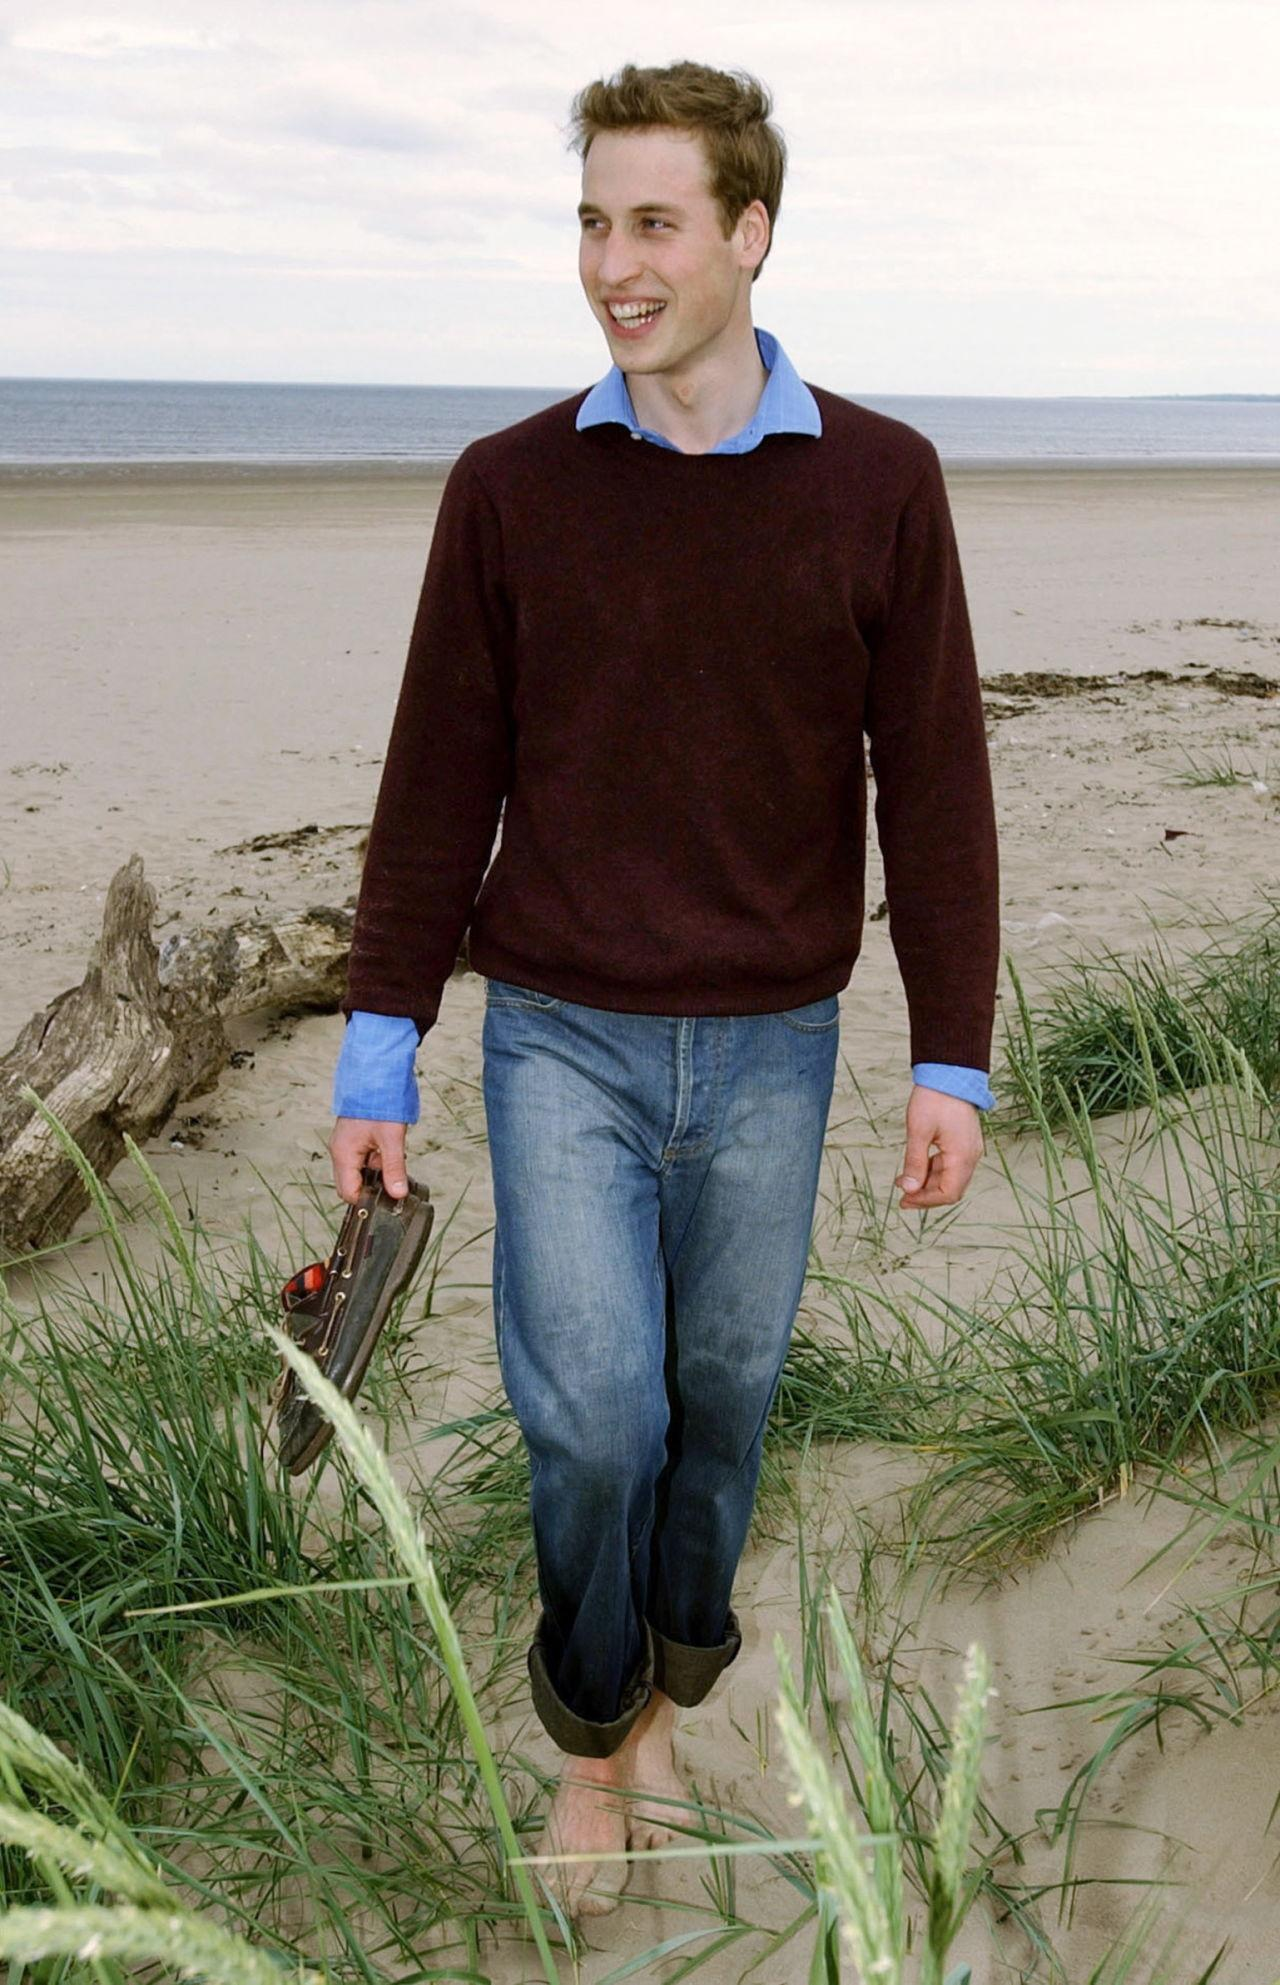 """<p>HRH The Duke of Cambridge took a gap year after graduating from Eton. He spent it training with the Welsh Guards in Belize, <a href=""""http://www.telegraph.co.uk/news/uknews/1377745/Hard-work-and-high-adventure-for-William-in-Chile.html"""" rel=""""nofollow noopener"""" target=""""_blank"""" data-ylk=""""slk:teaching English"""" class=""""link rapid-noclick-resp"""">teaching English</a> as a Raleigh International volunteer in Chile, traveling in Africa, and <a href=""""http://www.goabroad.com/blog/2011/04/28/prince-william-kate-middleton-inspire-students/"""" rel=""""nofollow noopener"""" target=""""_blank"""" data-ylk=""""slk:working"""" class=""""link rapid-noclick-resp"""">working</a> on a dairy farm in the United Kingdom. His younger brother, Prince Harry, followed in his footsteps and <a href=""""http://news.bbc.co.uk/cbbcnews/hi/find_out/guides/uk/prince_harry/newsid_3918000/3918037.stm"""" rel=""""nofollow noopener"""" target=""""_blank"""" data-ylk=""""slk:worked"""" class=""""link rapid-noclick-resp"""">worked</a> with orphans in Lesotho in Africa after leaving school in 2003.</p>"""